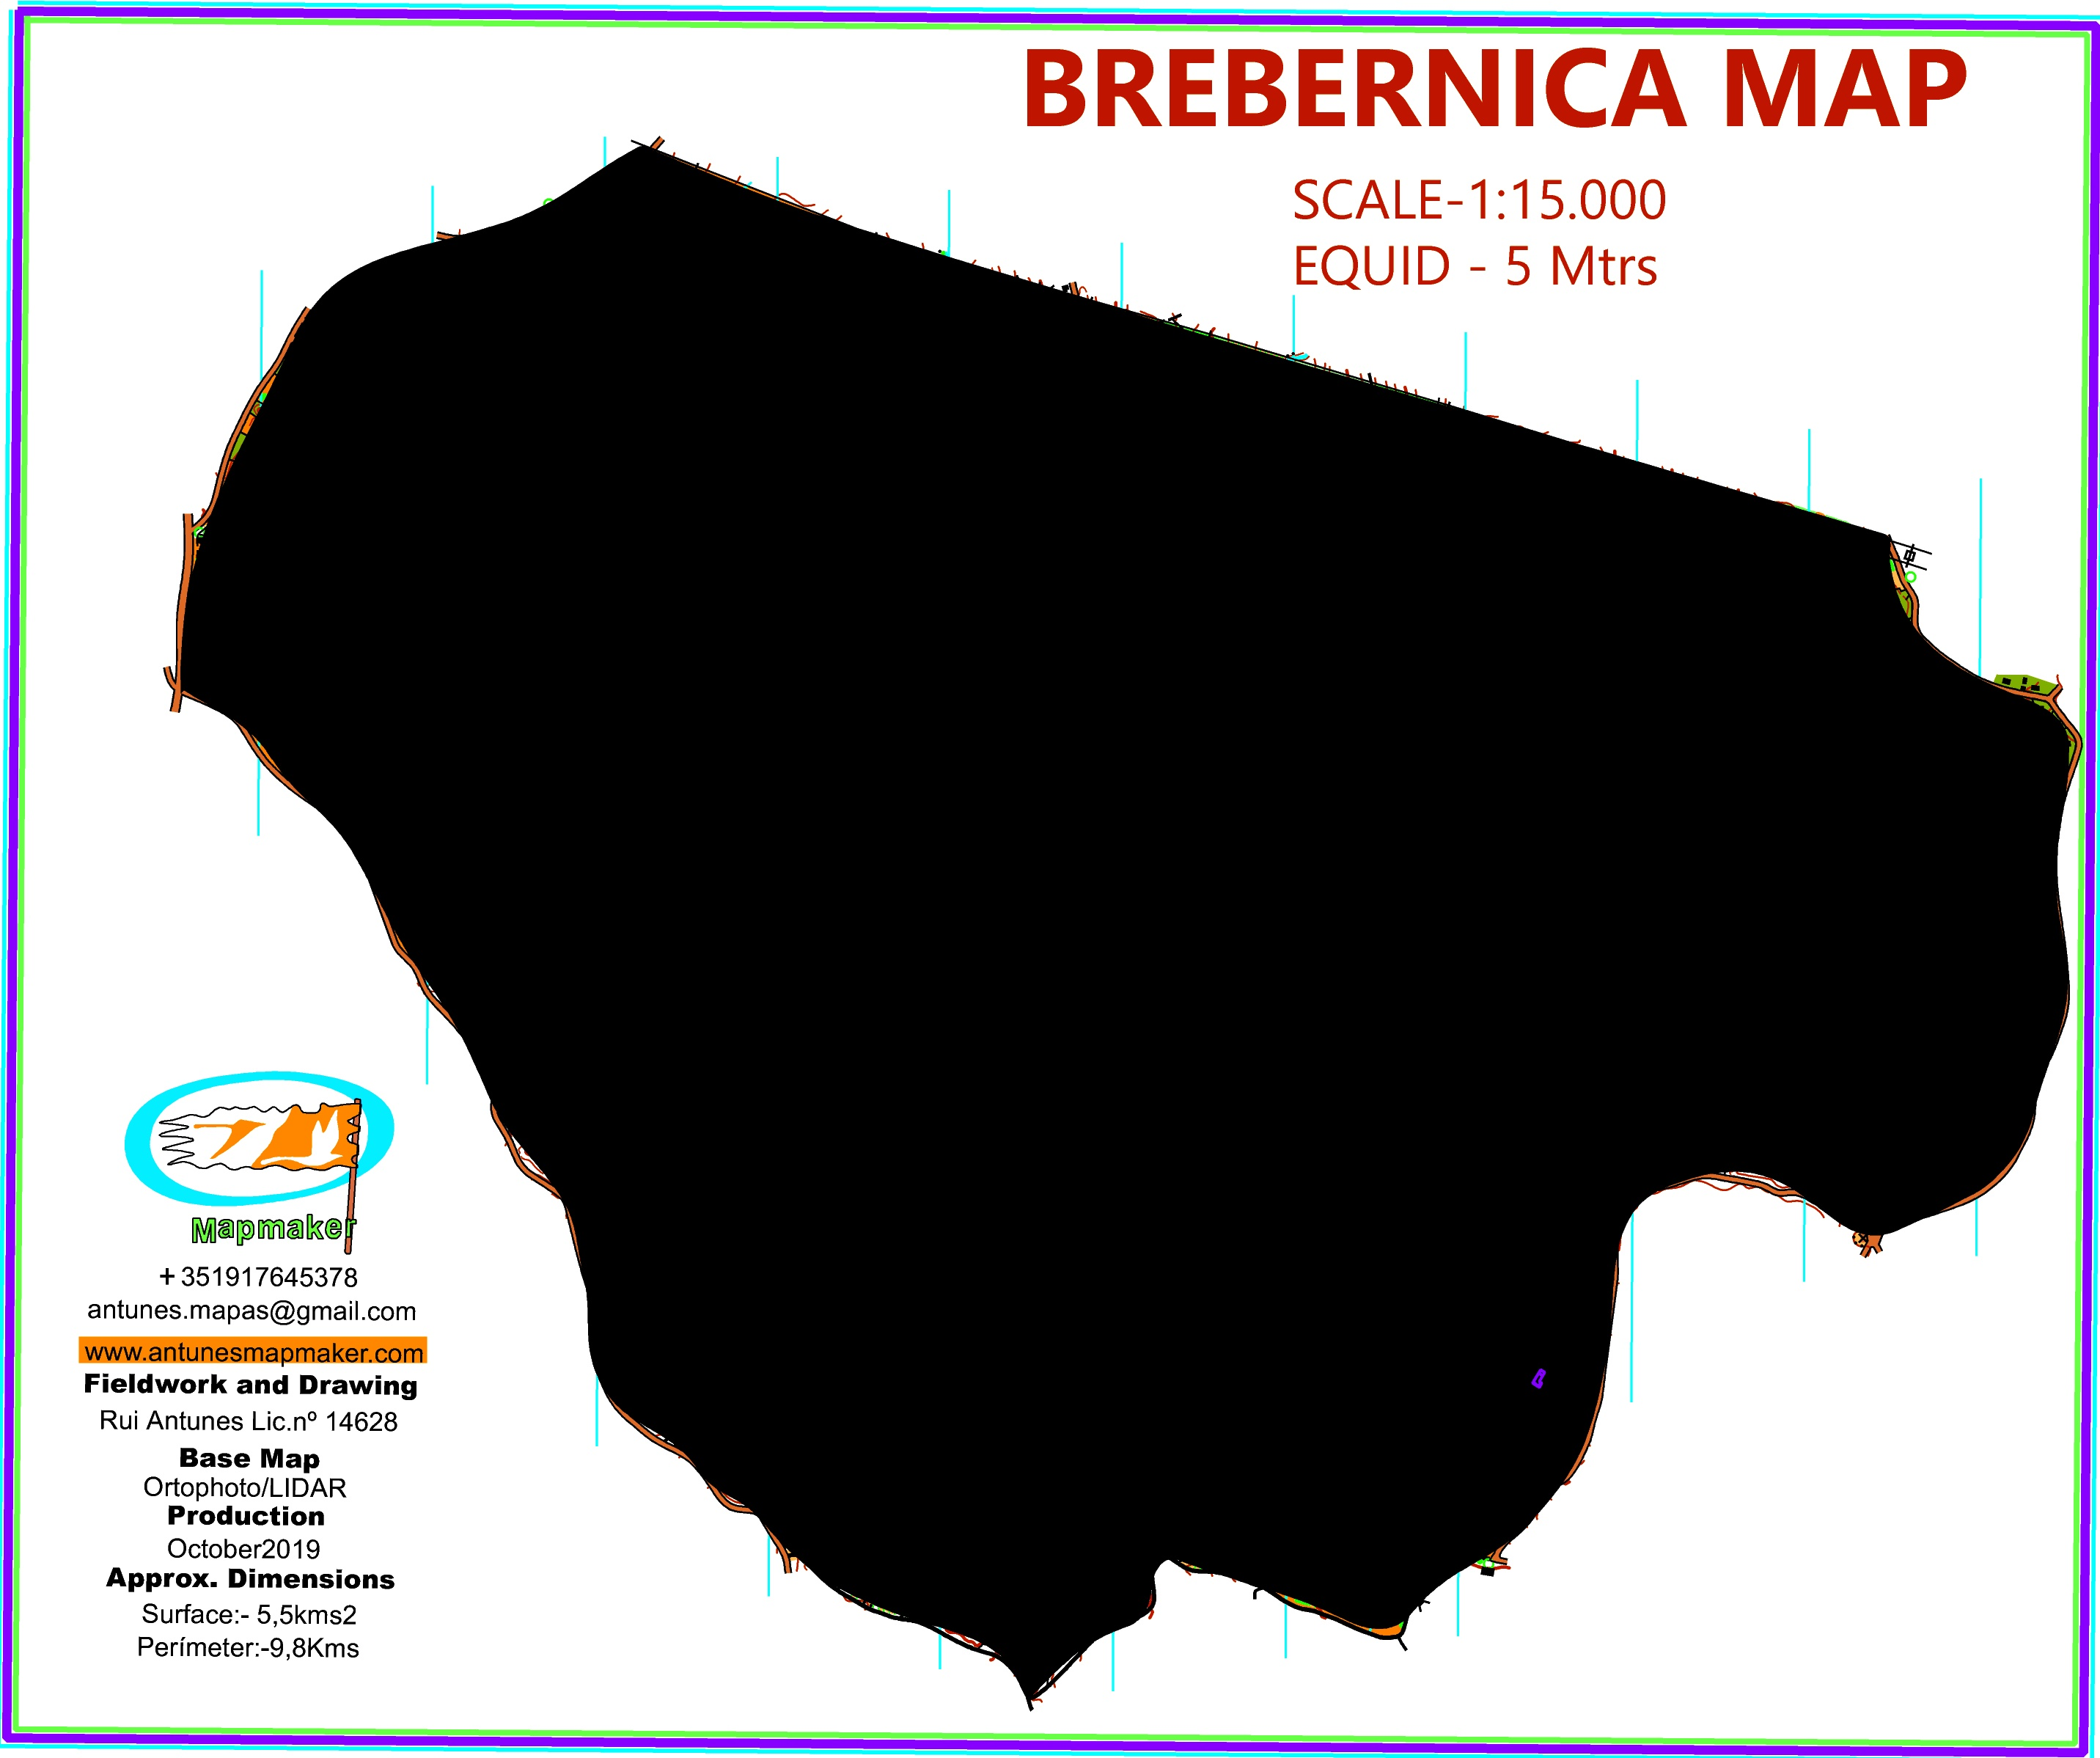 (237) Map Brebernica2019 - Croatia October2019